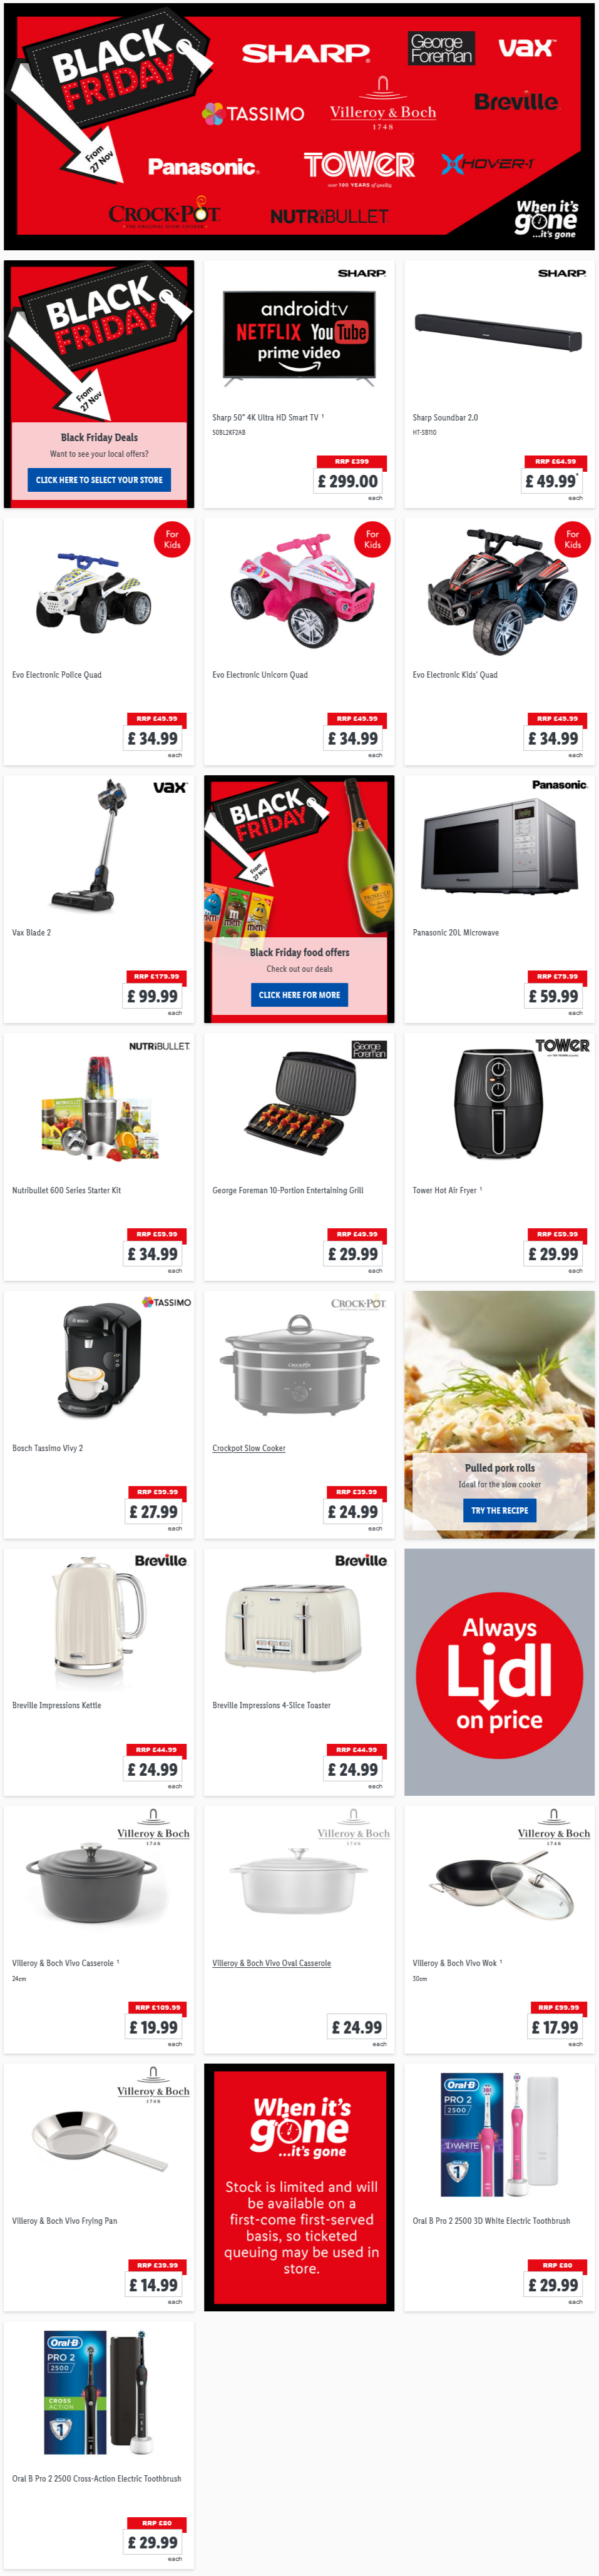 Lidl Black Friday Deals From Friday, 27th November 2020